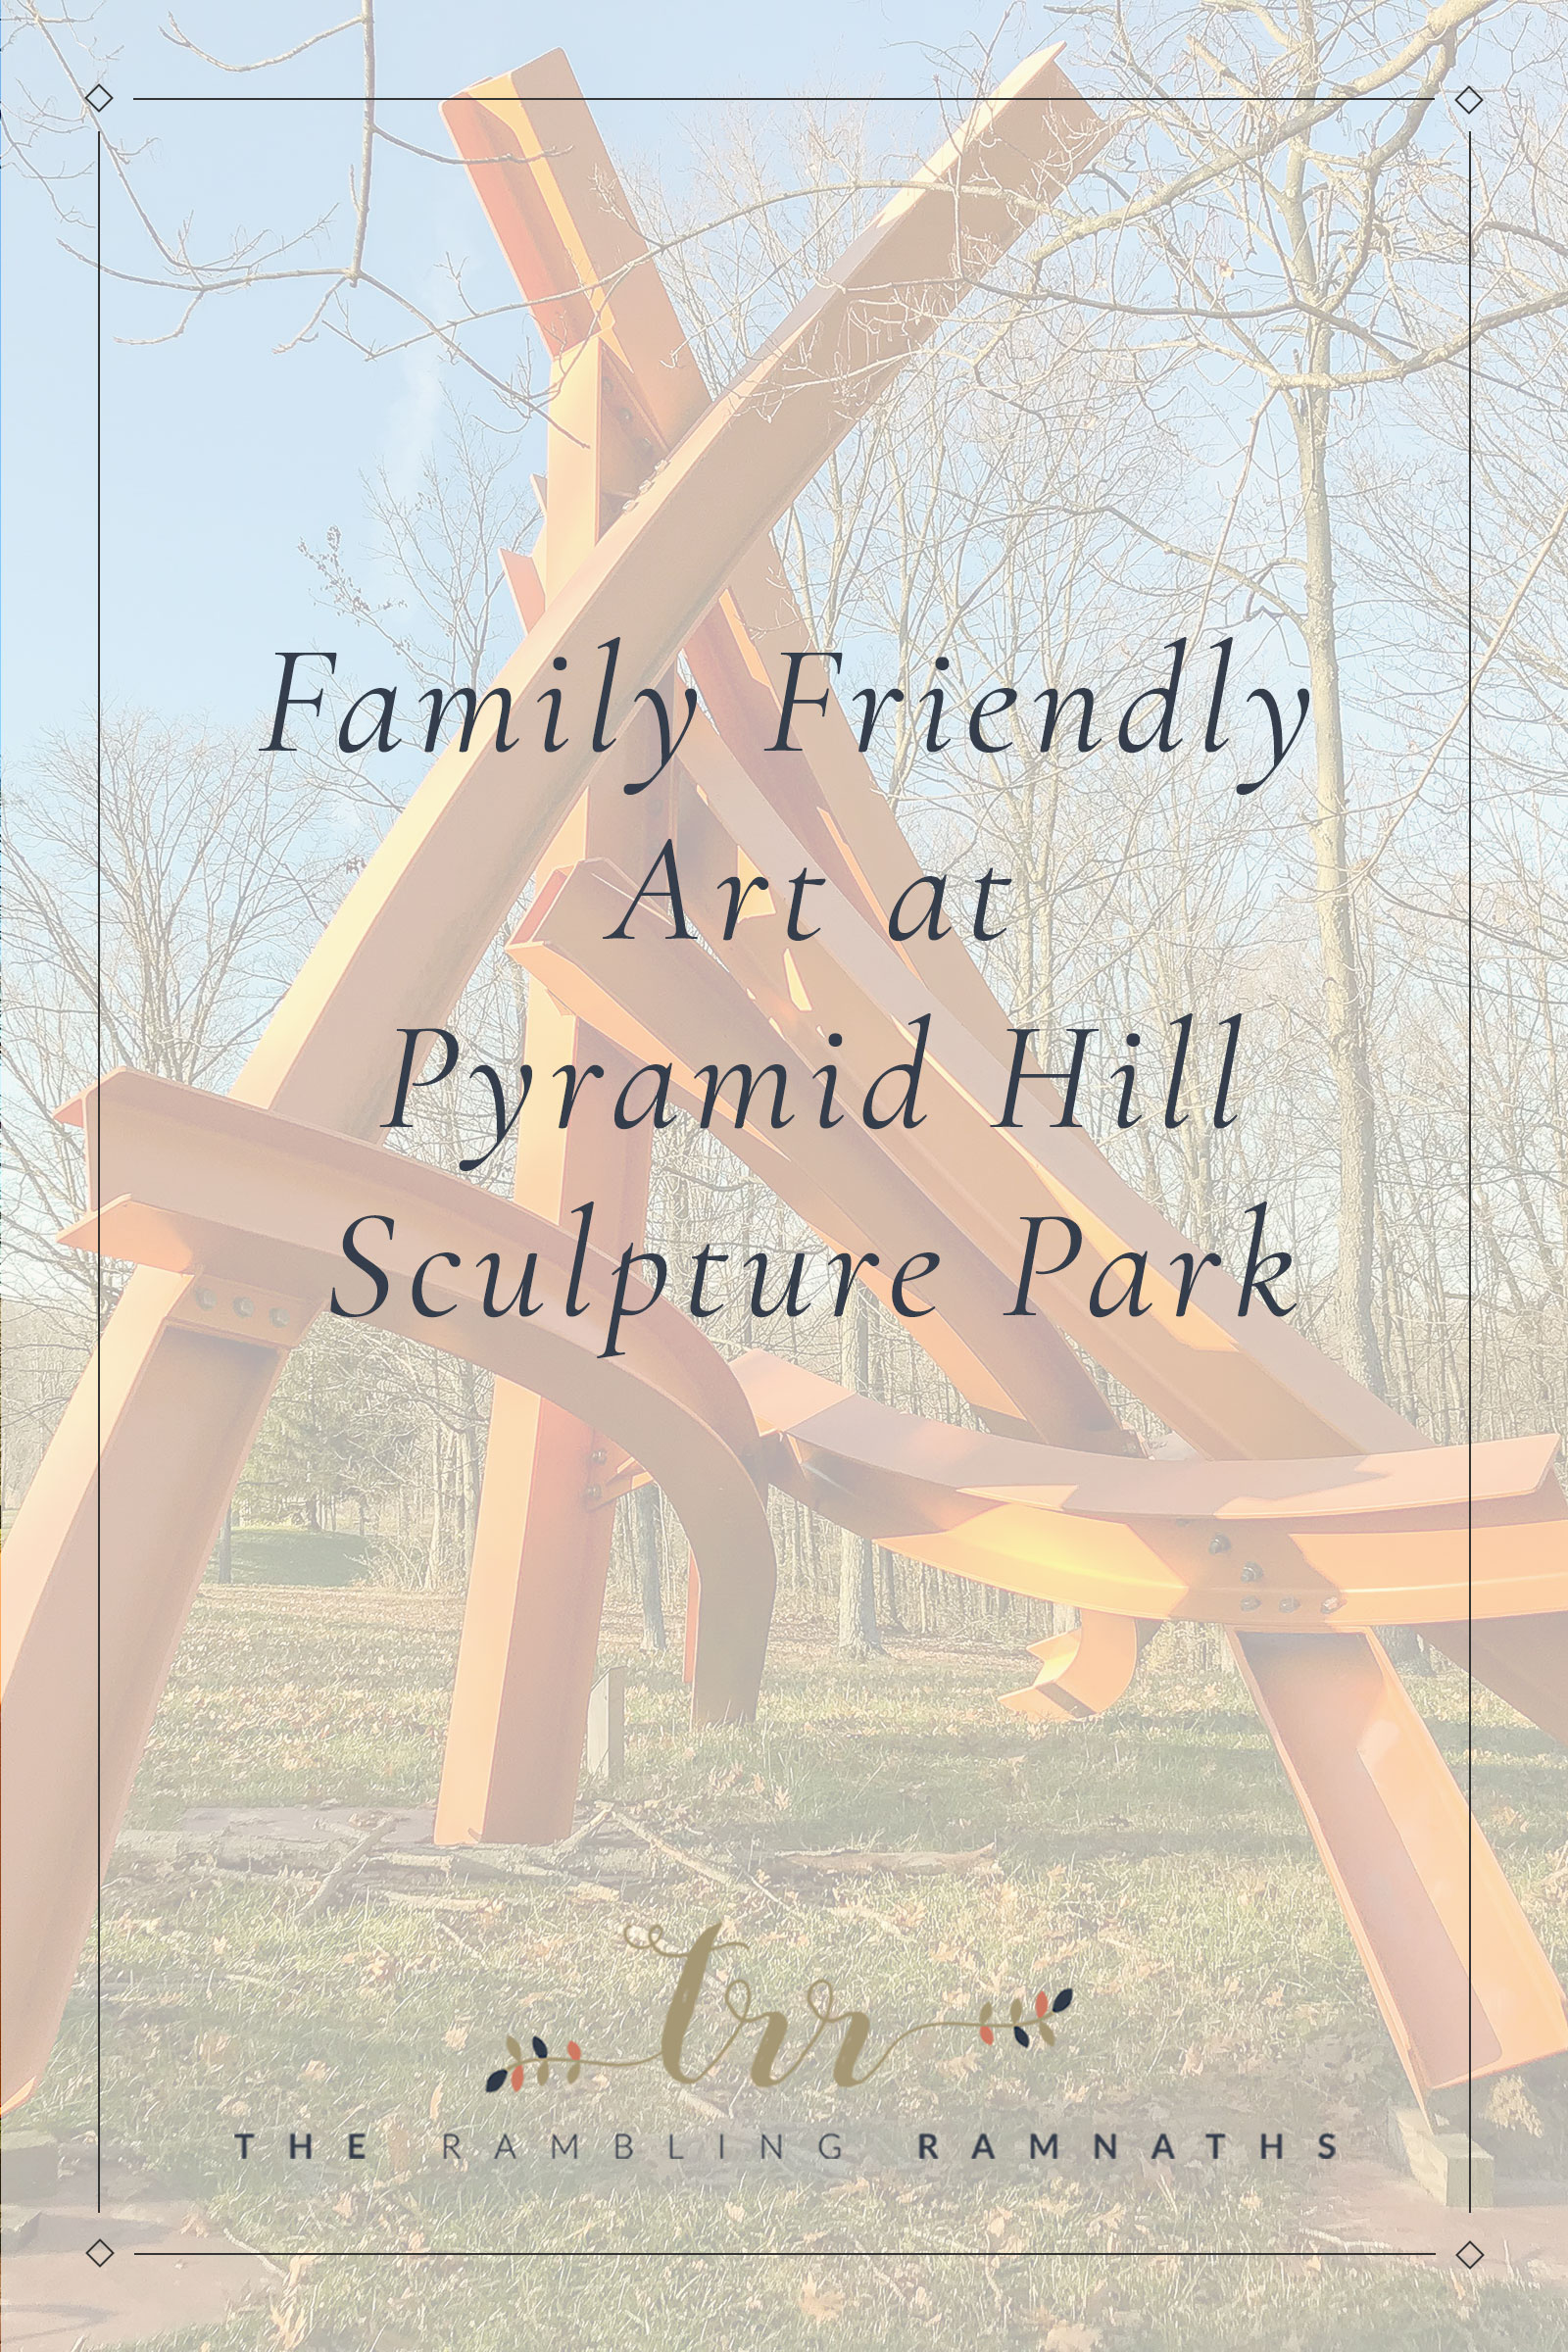 Pyramid Hill Sculpture Park in Hamilton, Ohio is a great place for a family adventure! It is great for introducing your kids to art. Perfect place to spend the day as a family